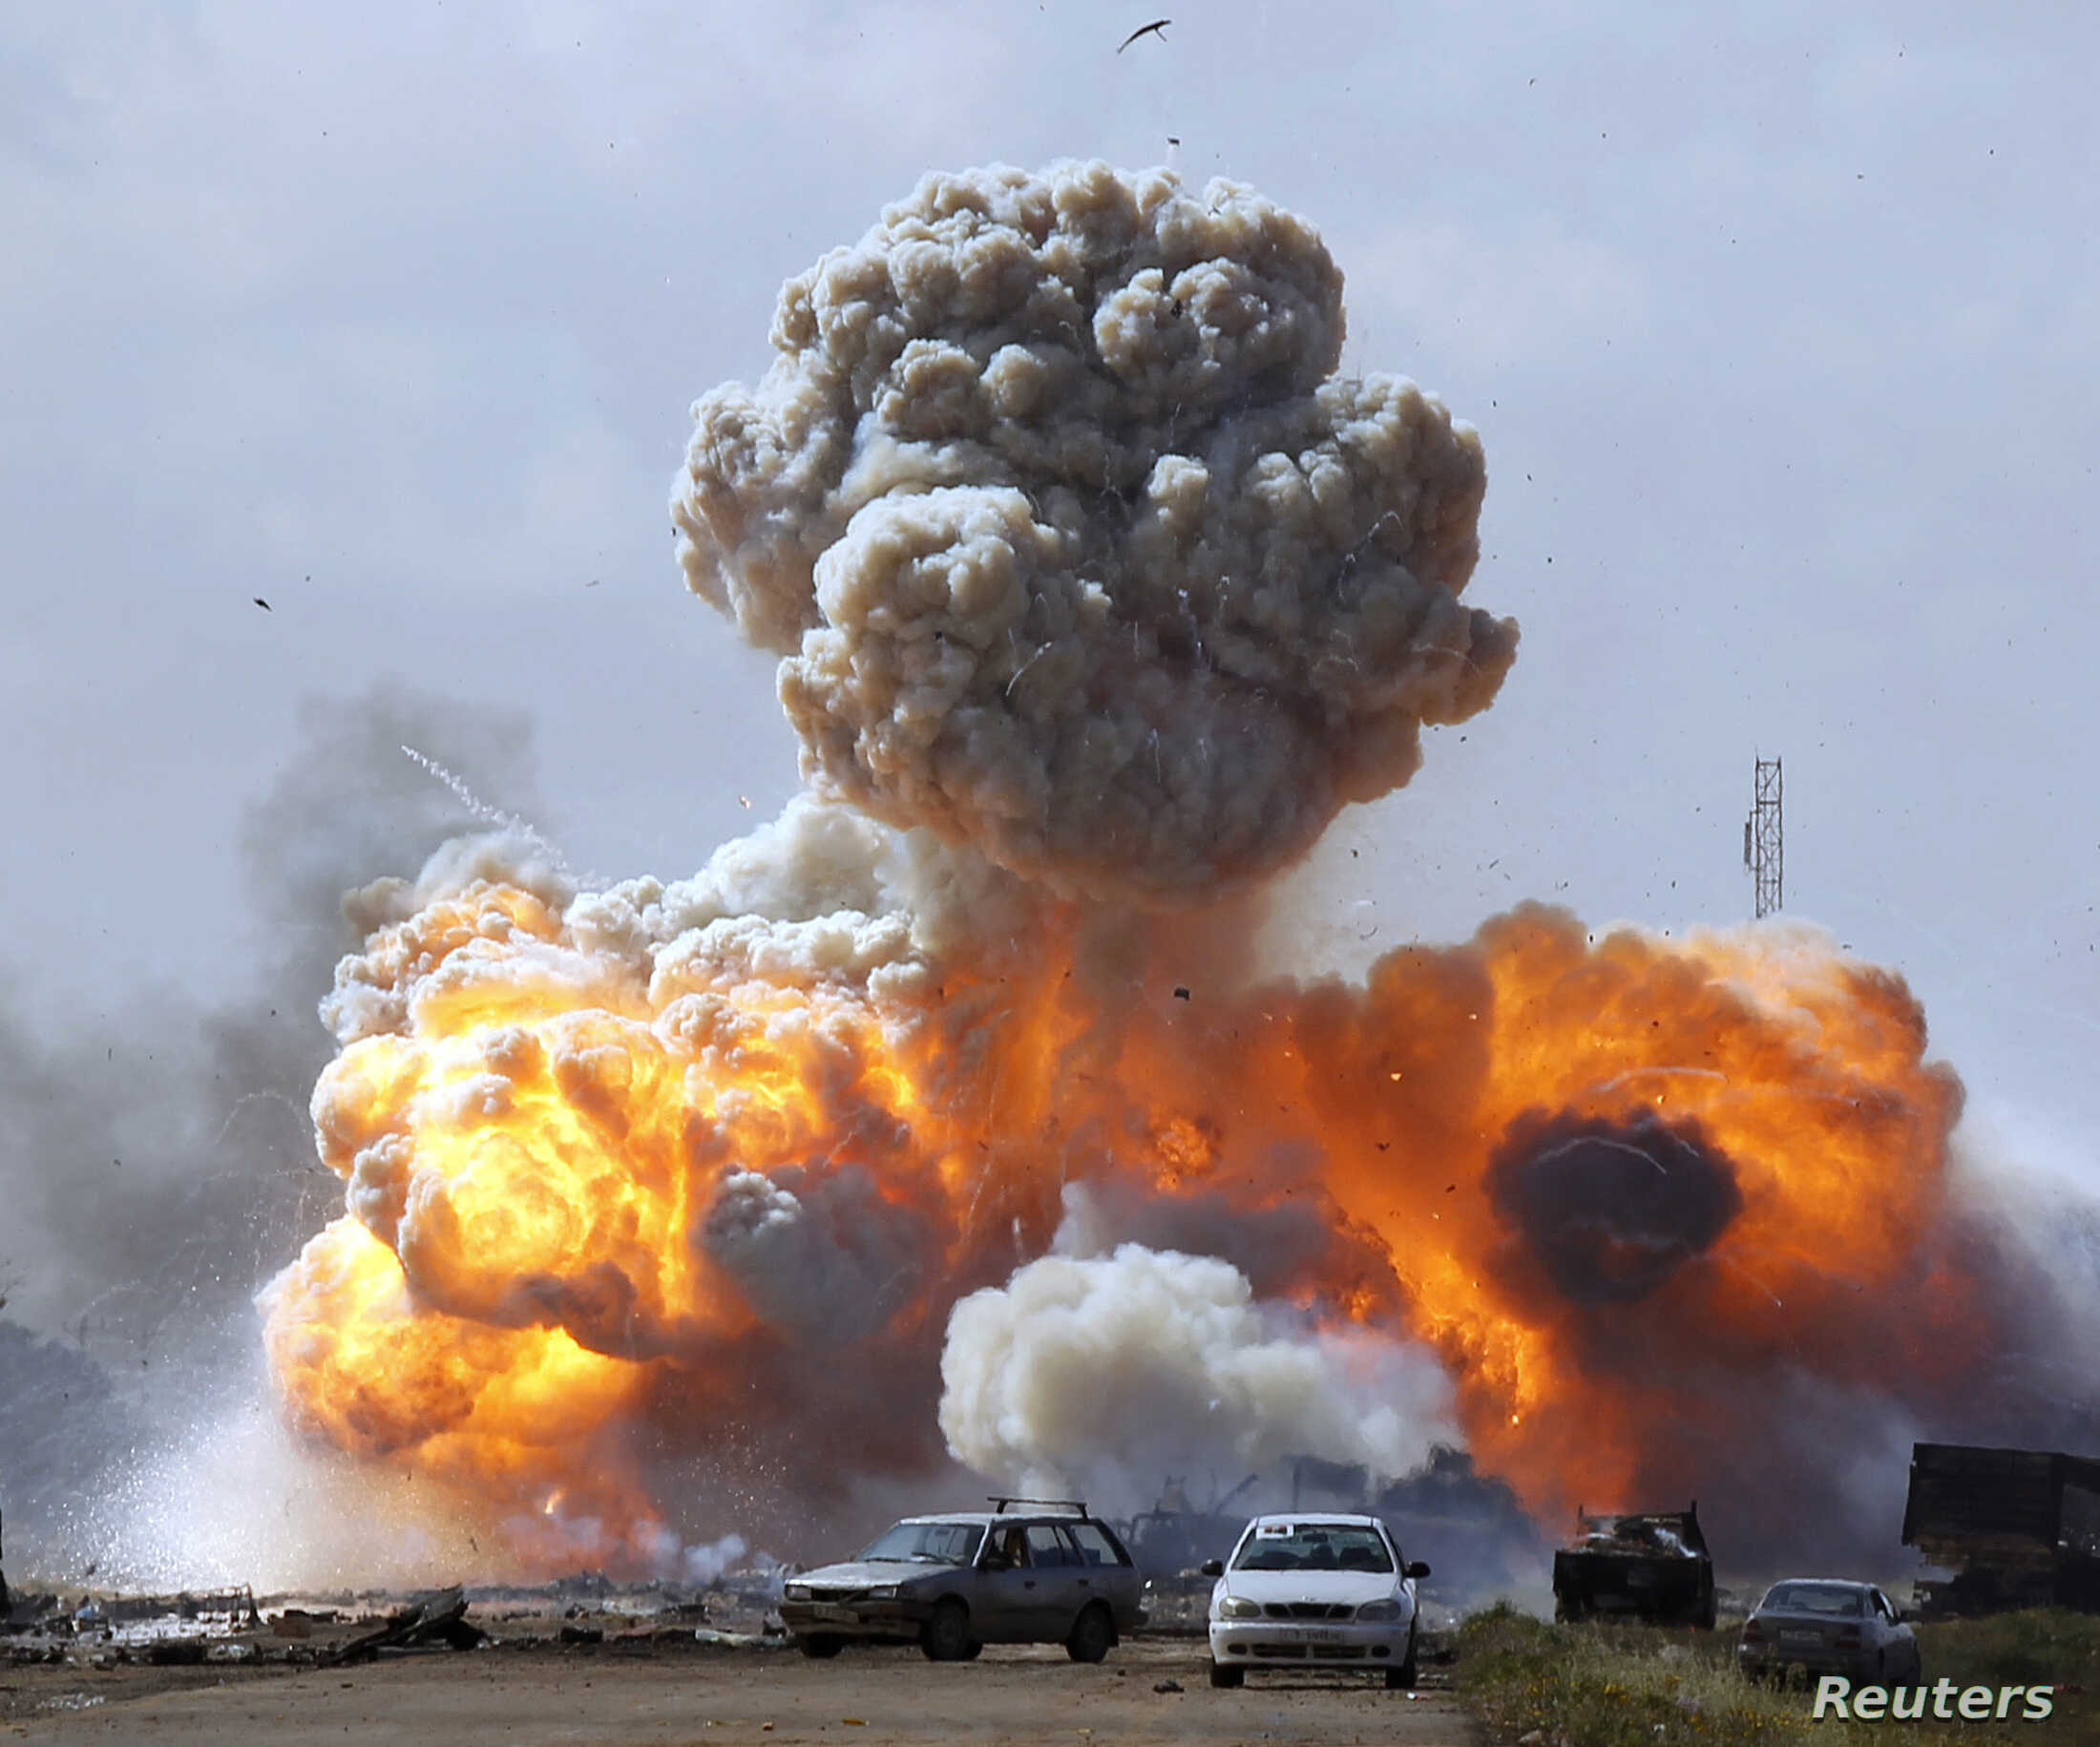 Vehicles belonging to forces loyal to Libyan leader Moammar Gadhafi explode after an airstrike by coalition forces, along a road between Benghazi and, March 20, 2011.